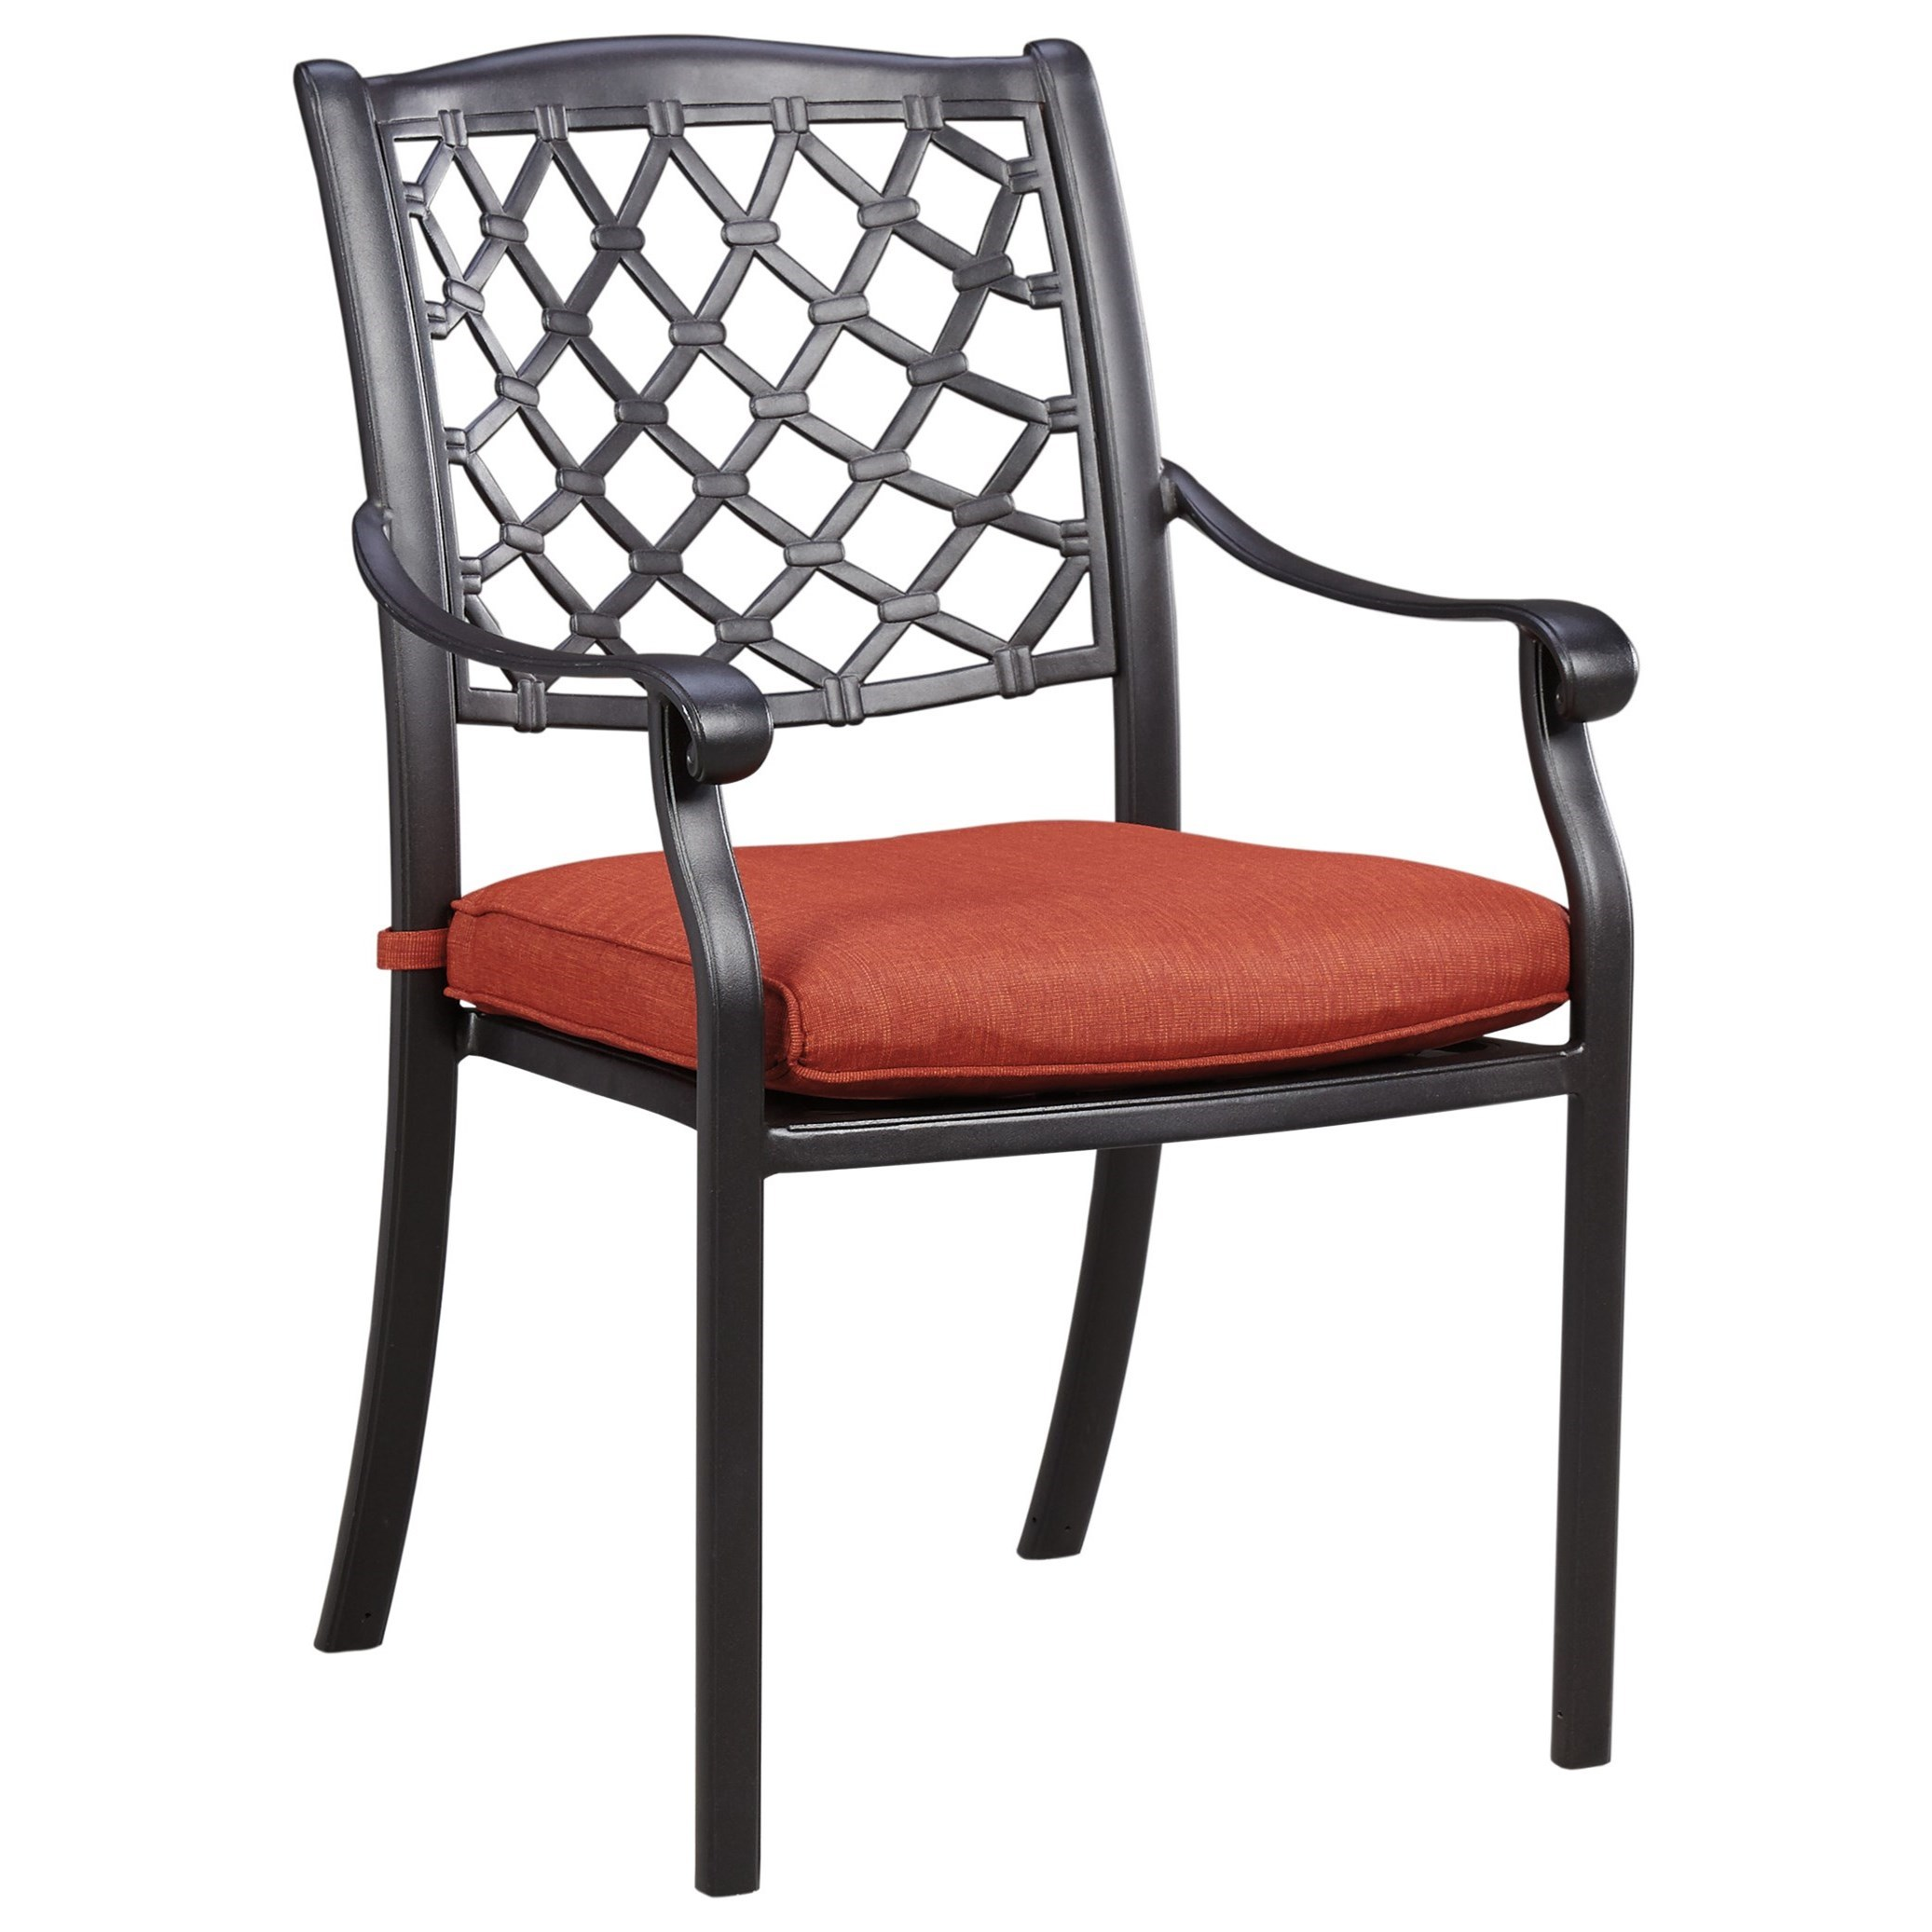 Tanglevale Set of 4 Outdoor Chairs with Cushion by Signature Design by Ashley at Lapeer Furniture & Mattress Center